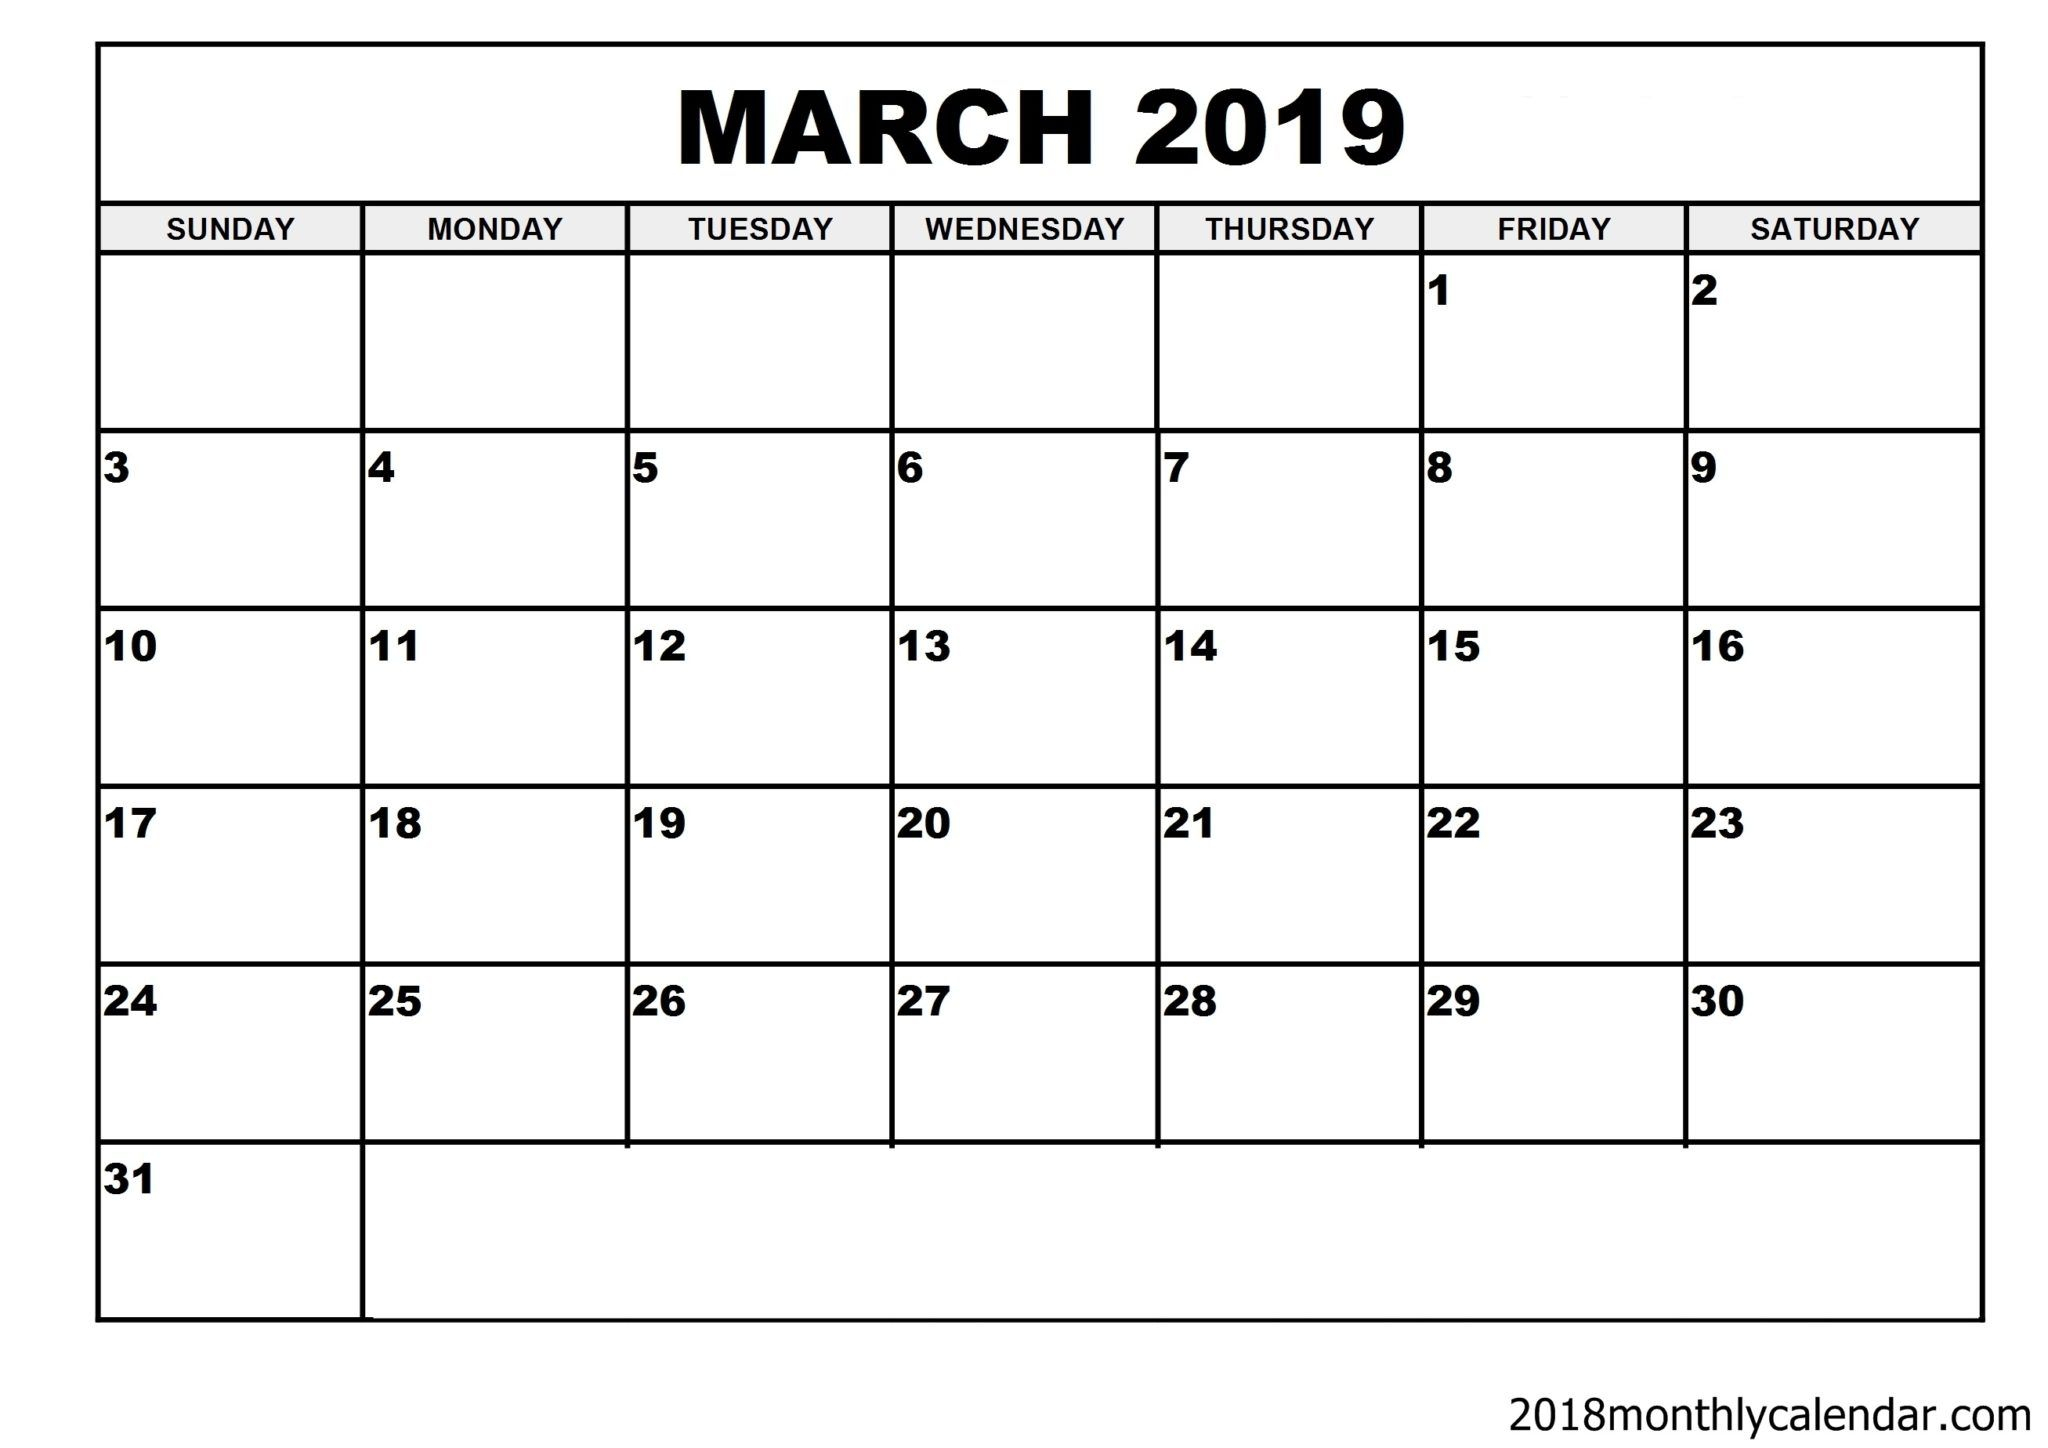 Download March 2019 Calendar – Blank Template - Editable Calendar inside March Calendar Printable Template